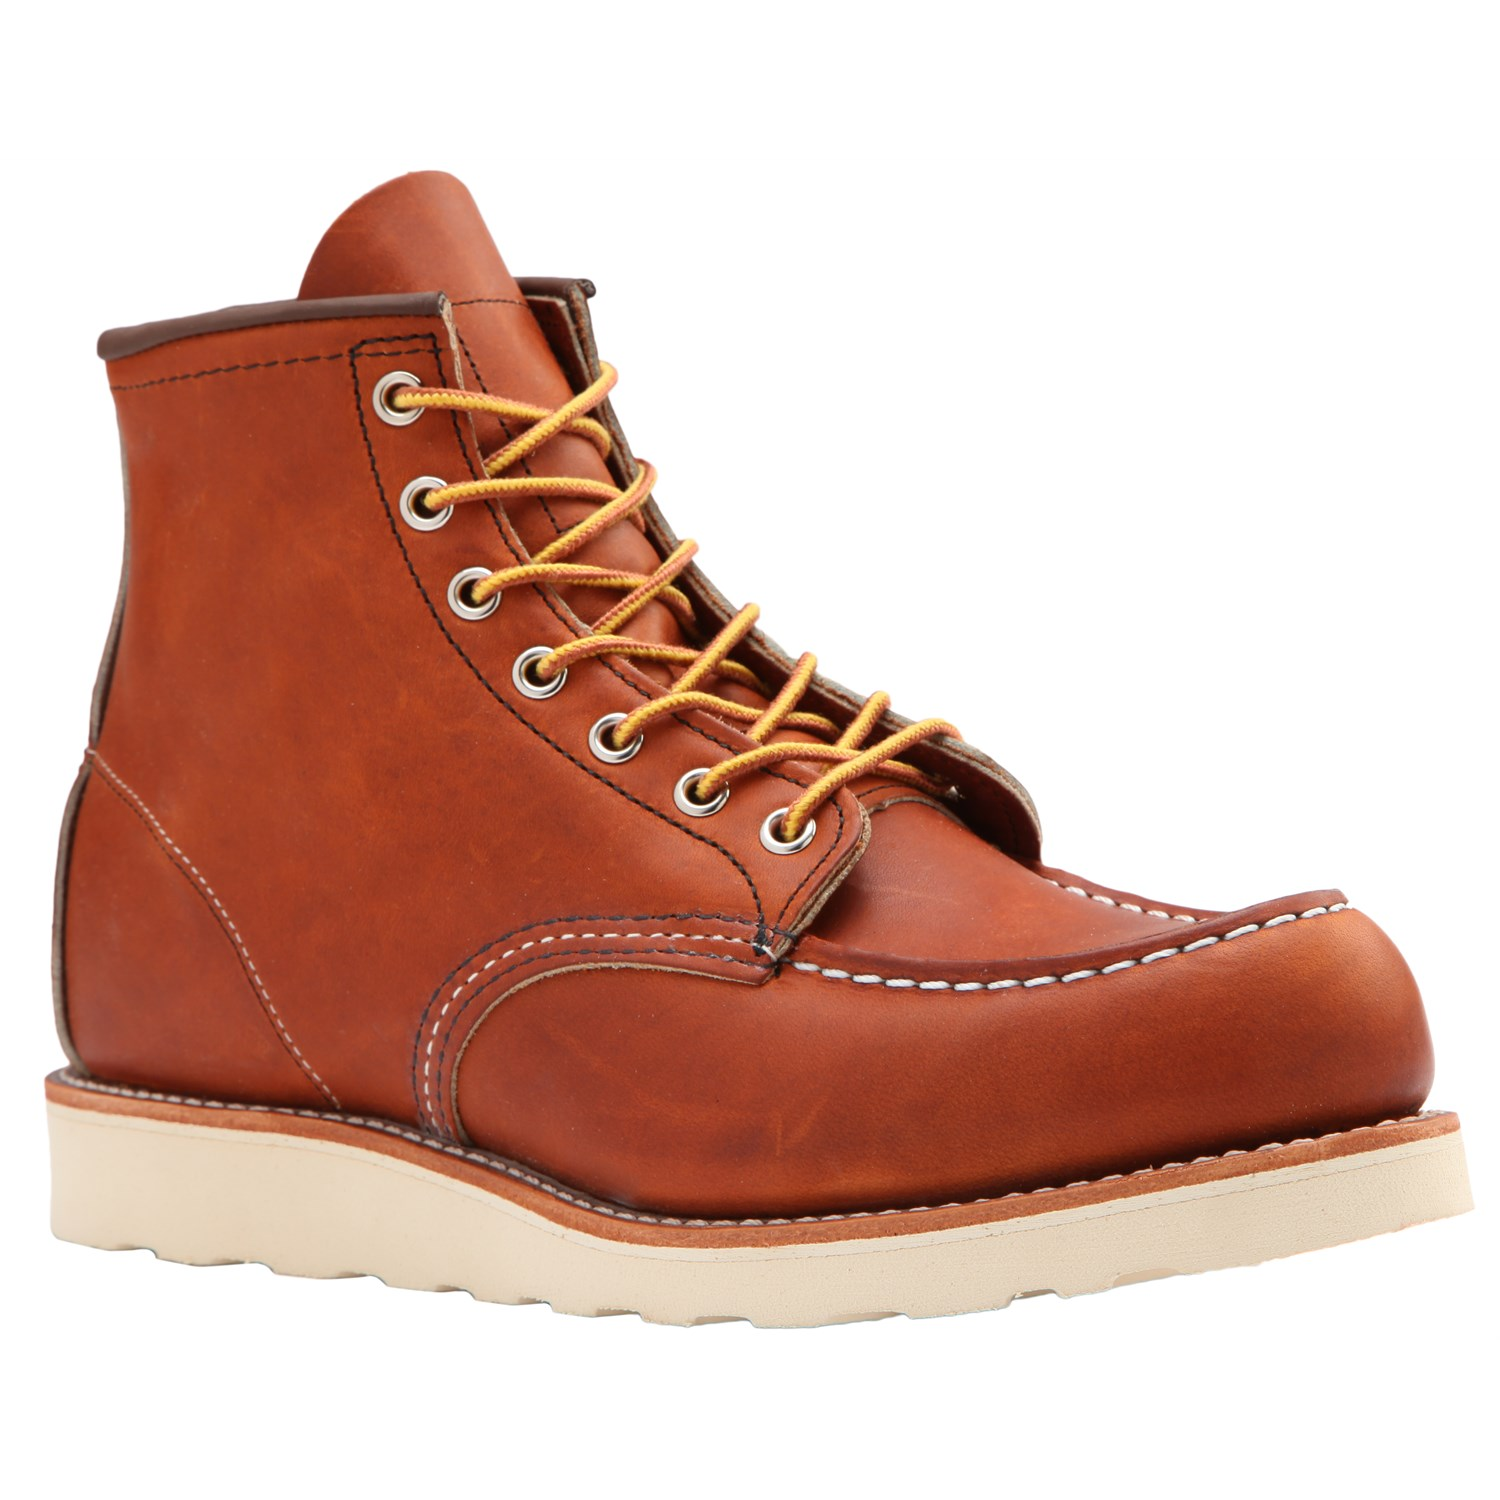 76f9718e23a2 Red Wing 875 6-Inch Moc Boot